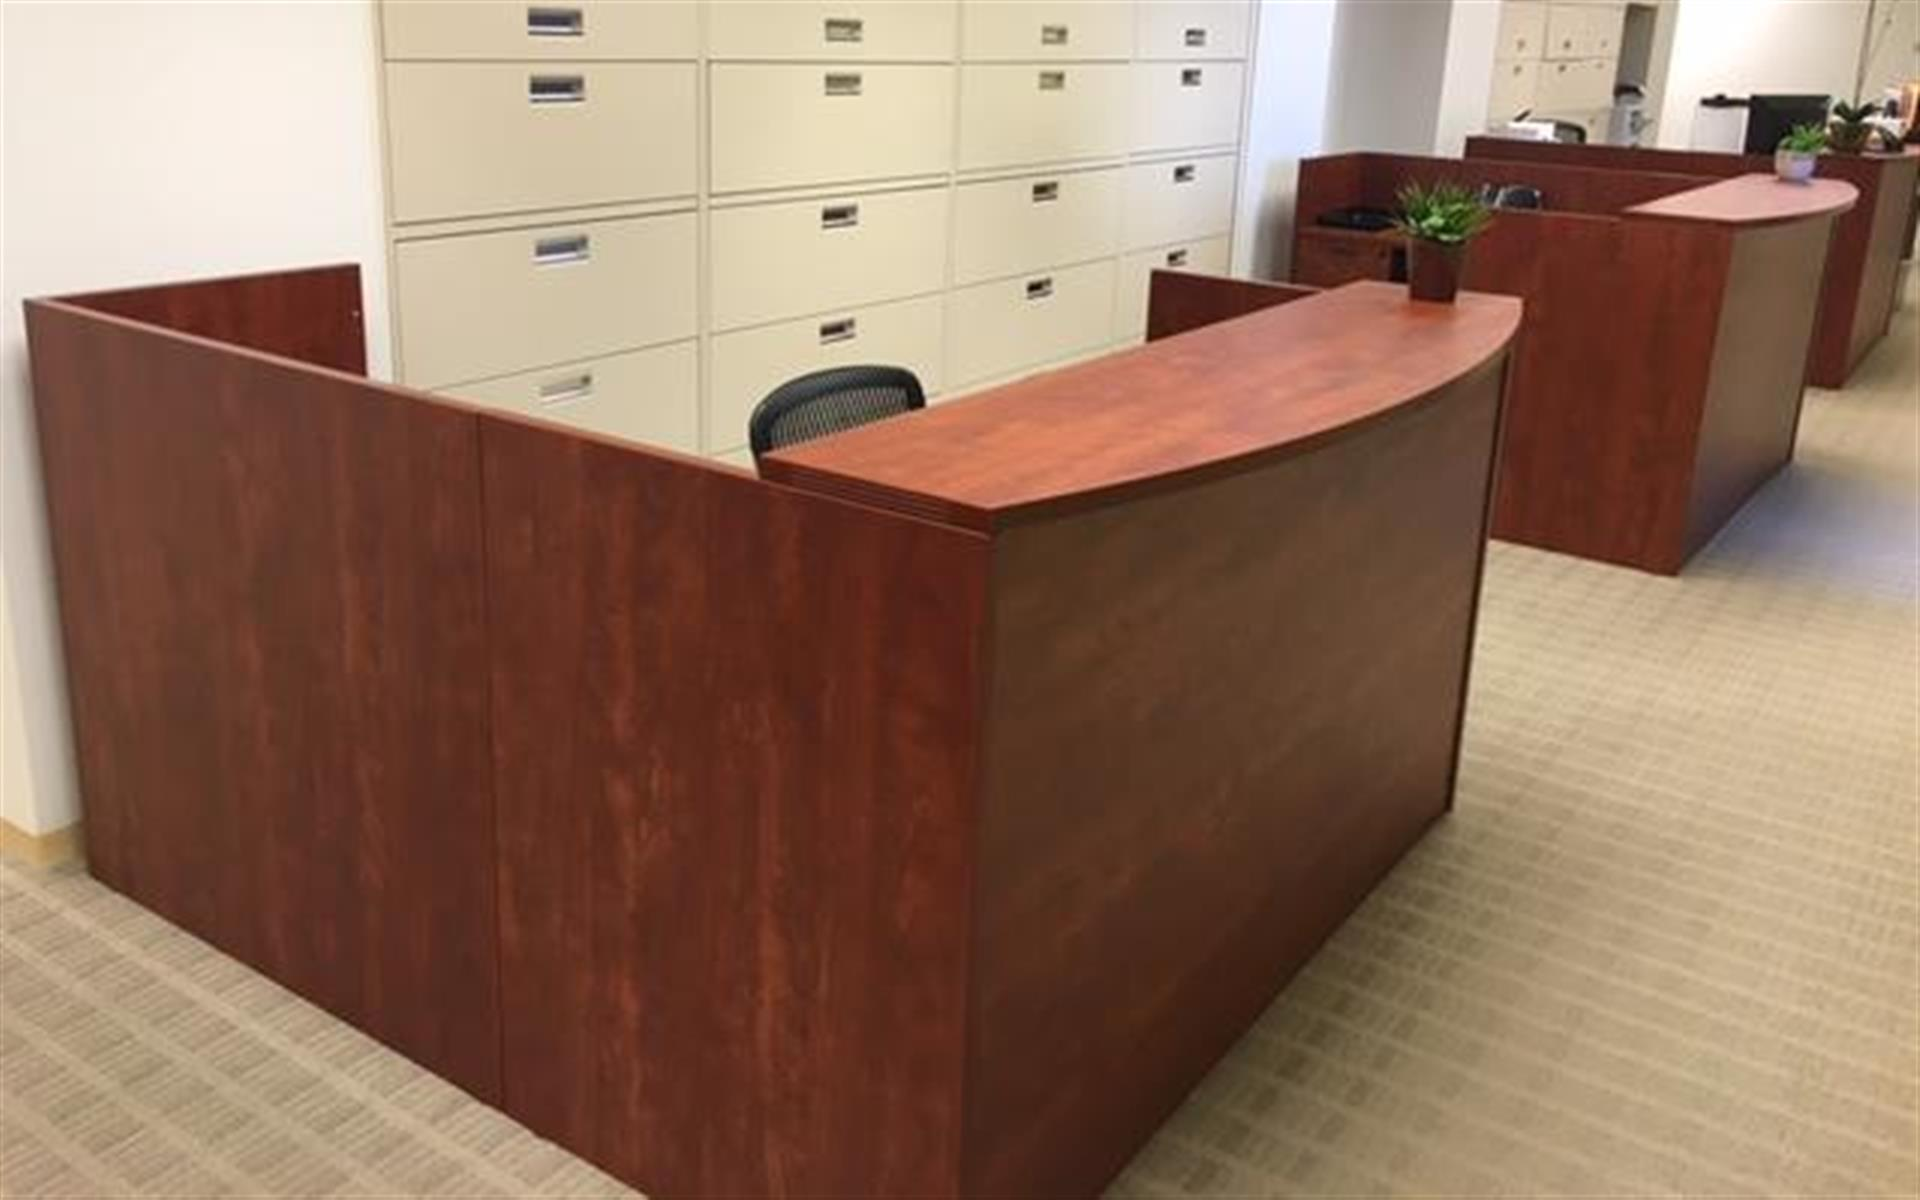 Carr Workplaces - Constellation Place - Dedicated Desk